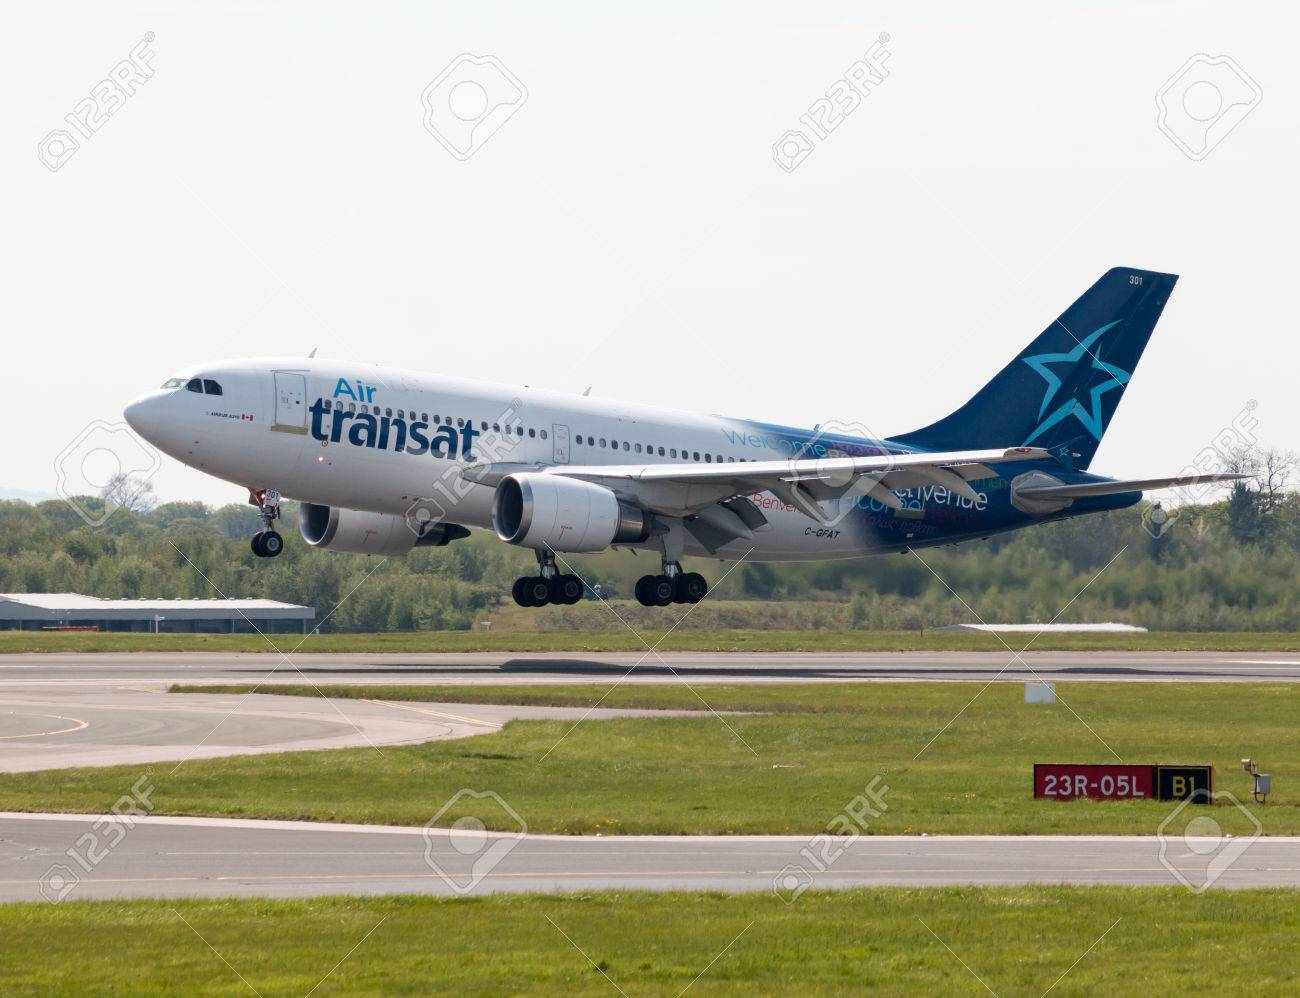 Air Transat Airbus A310 medium- to long-range twin-engined wide-body